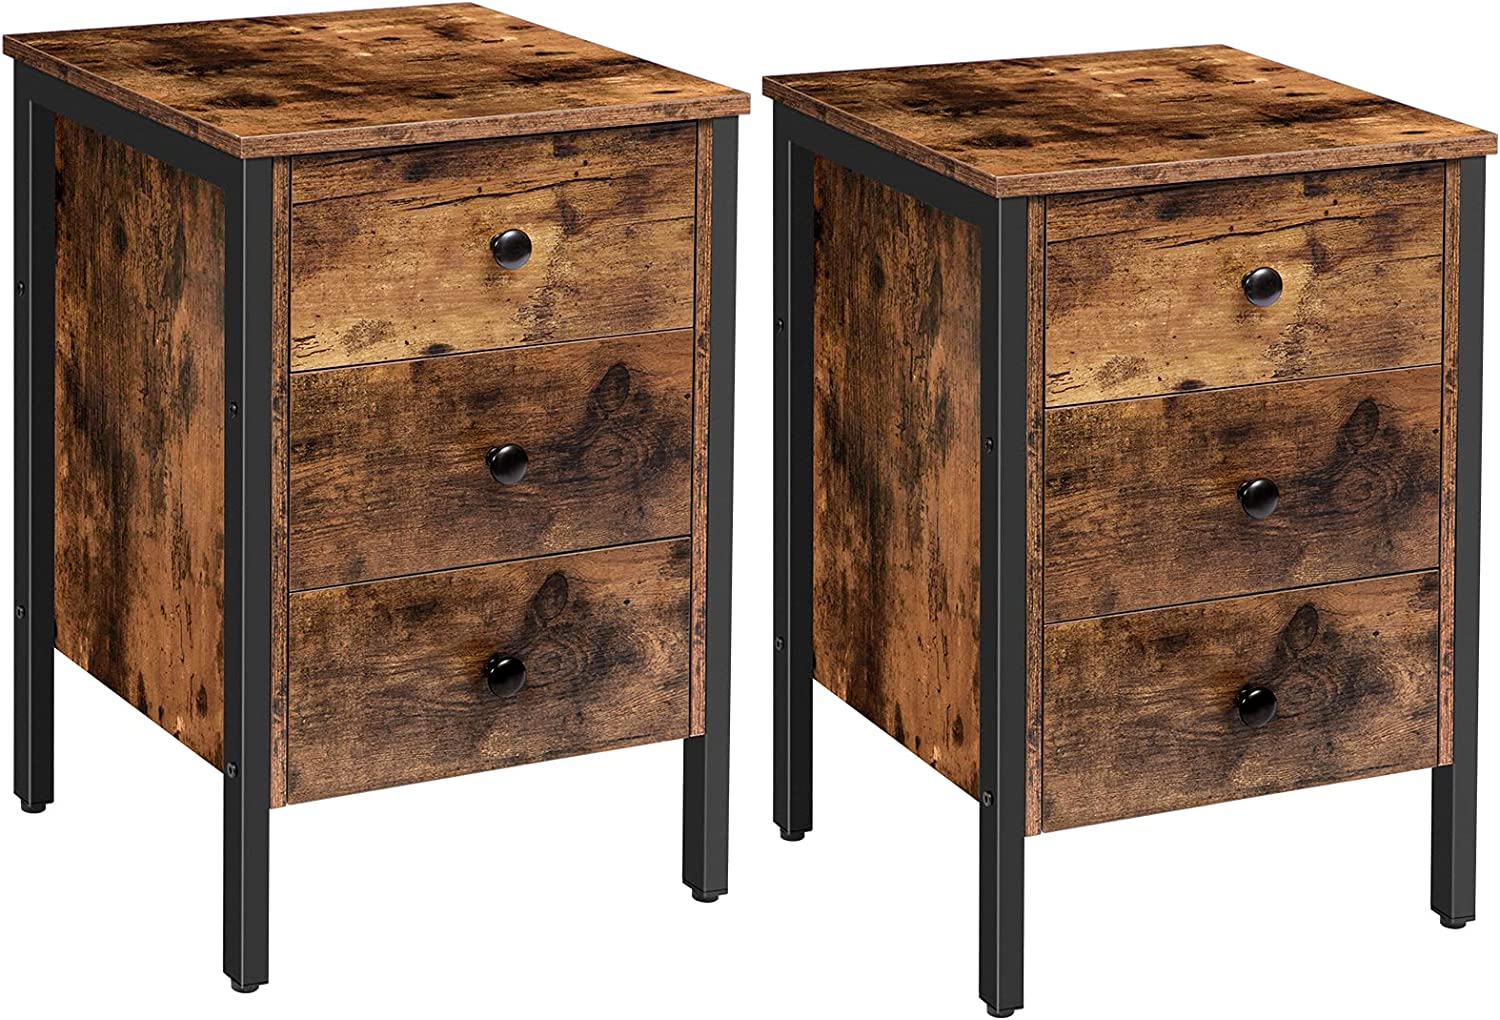 HOOBRO Nightstands Set of 2, End Table with 3 Drawers and Storage Shelf, Retro Industrial Style End Table, for Living Room, Bedroom, Easy Assembly, Rustic Brown and Black BF46BZP201